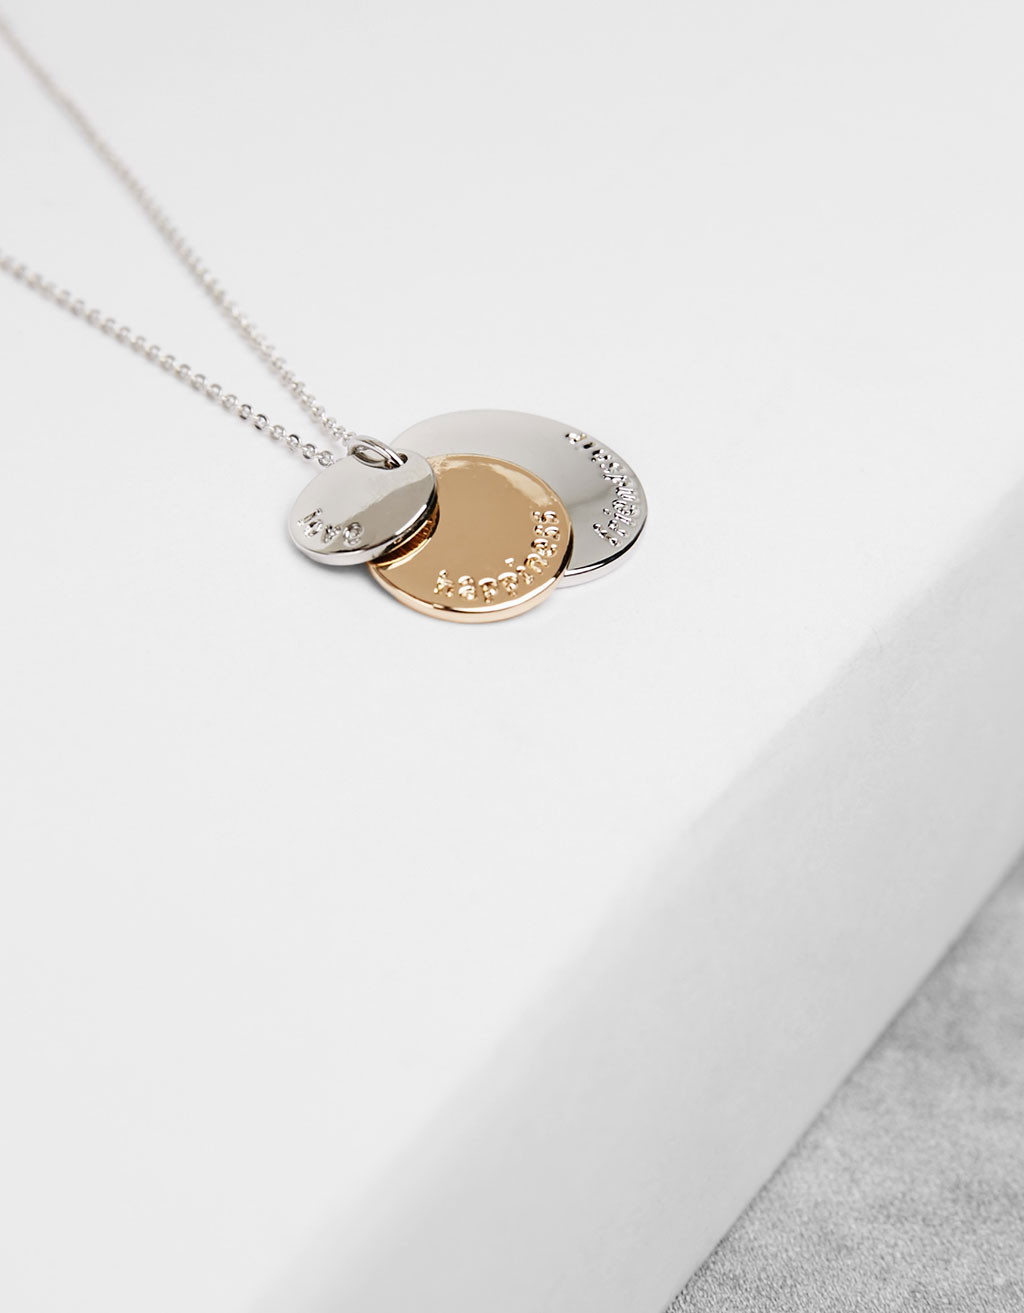 Minimal necklace with three tags